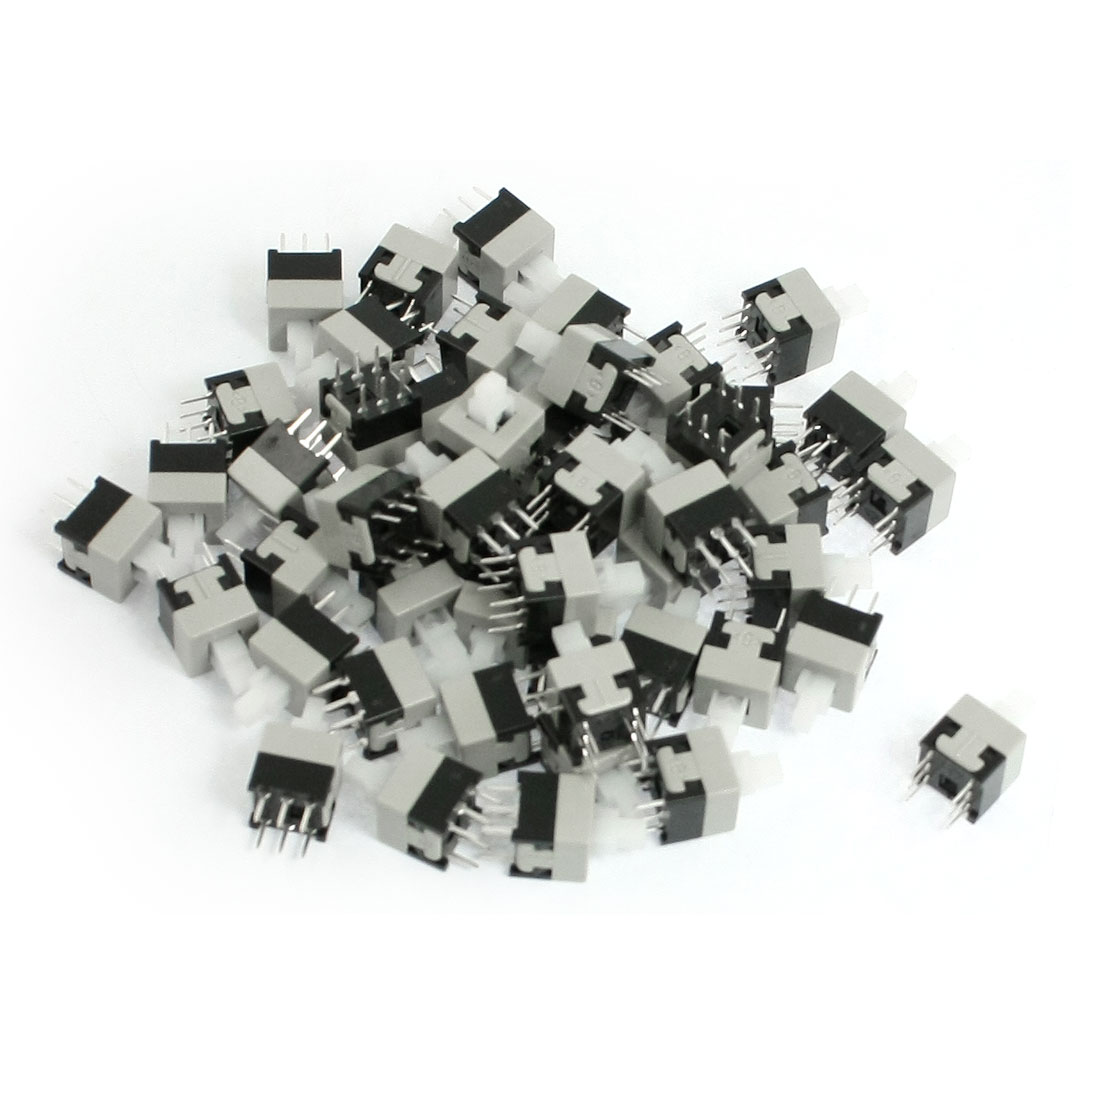 50 Pcs Momentary Action 6 Pins Torch Push Button Switch 8.5x8.5mm